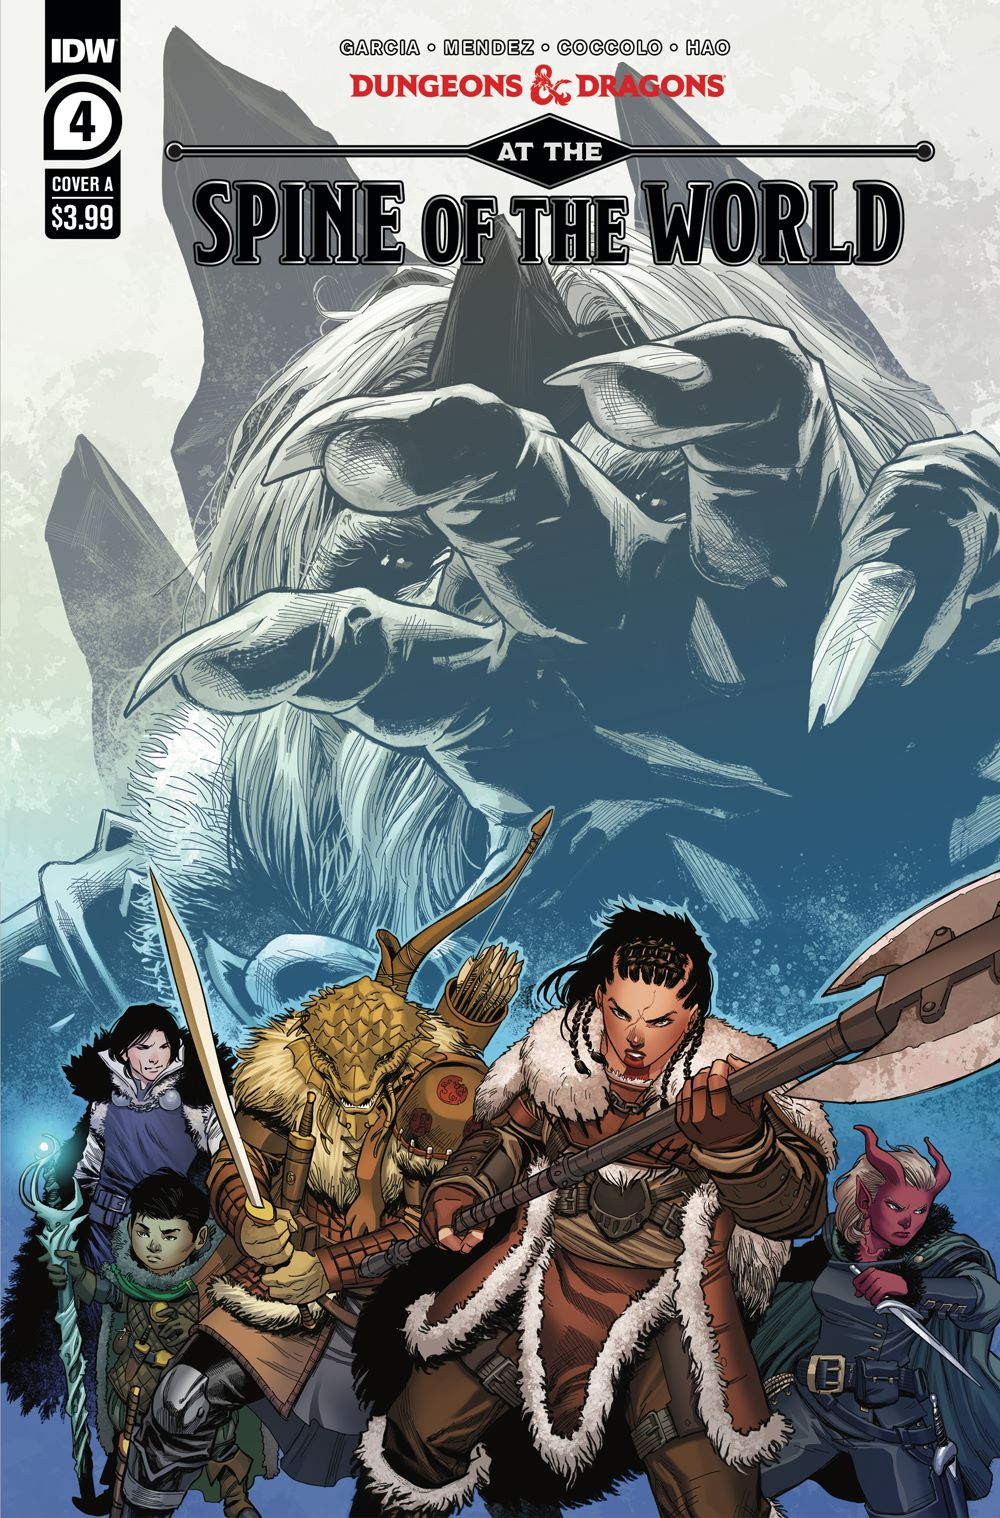 DD_ATSOTW04-coverA ComicList: IDW Publishing New Releases for 03/24/2021